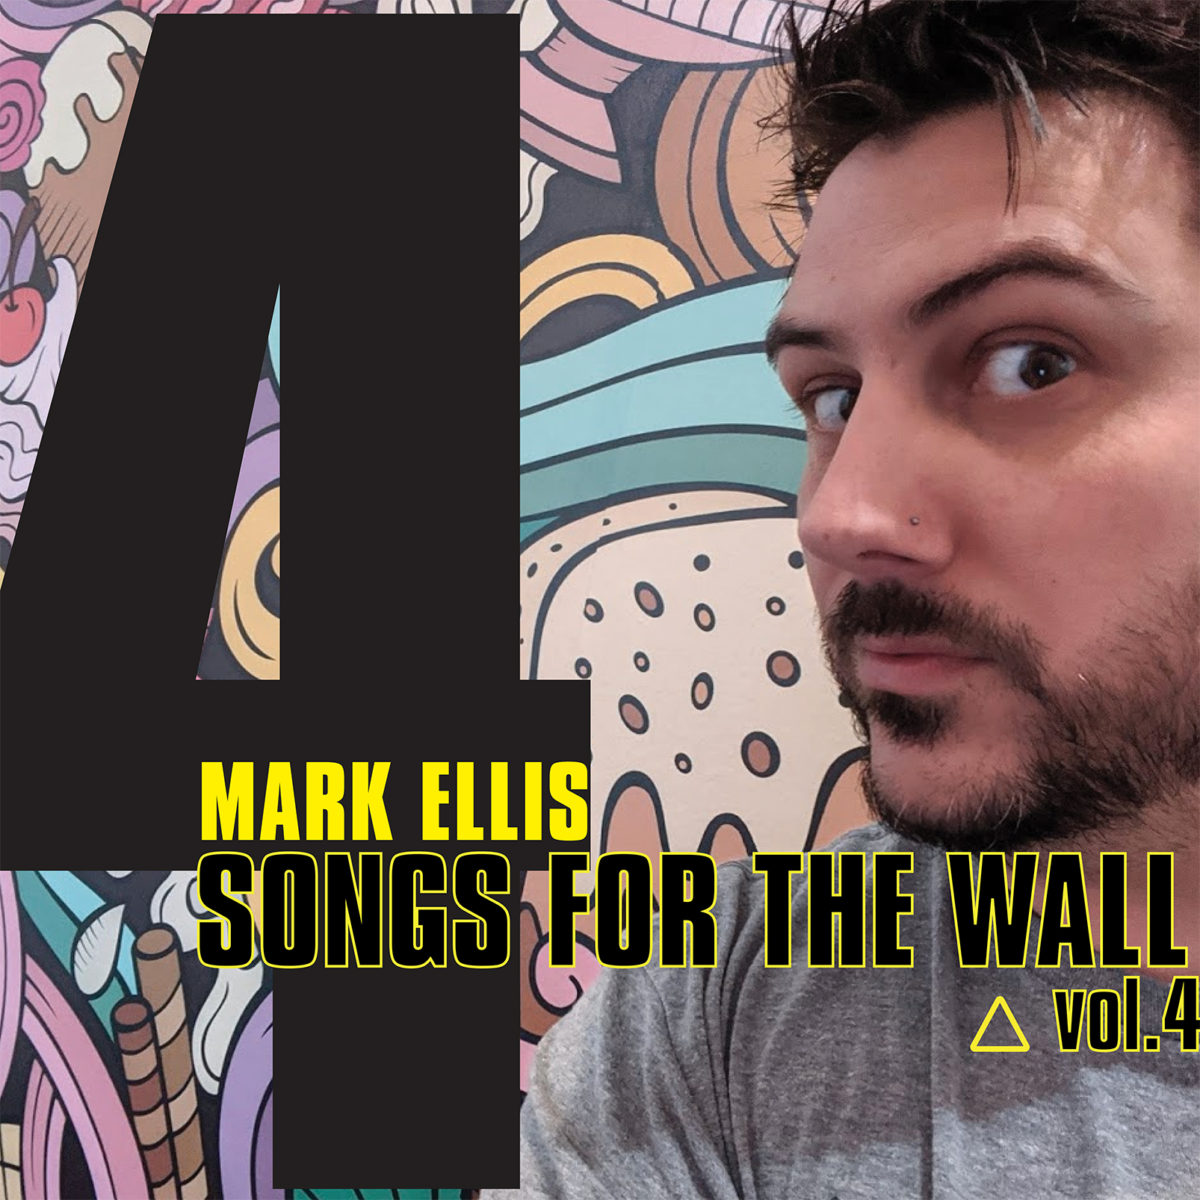 Mark Ellis – Songs For The Wall Vol.4